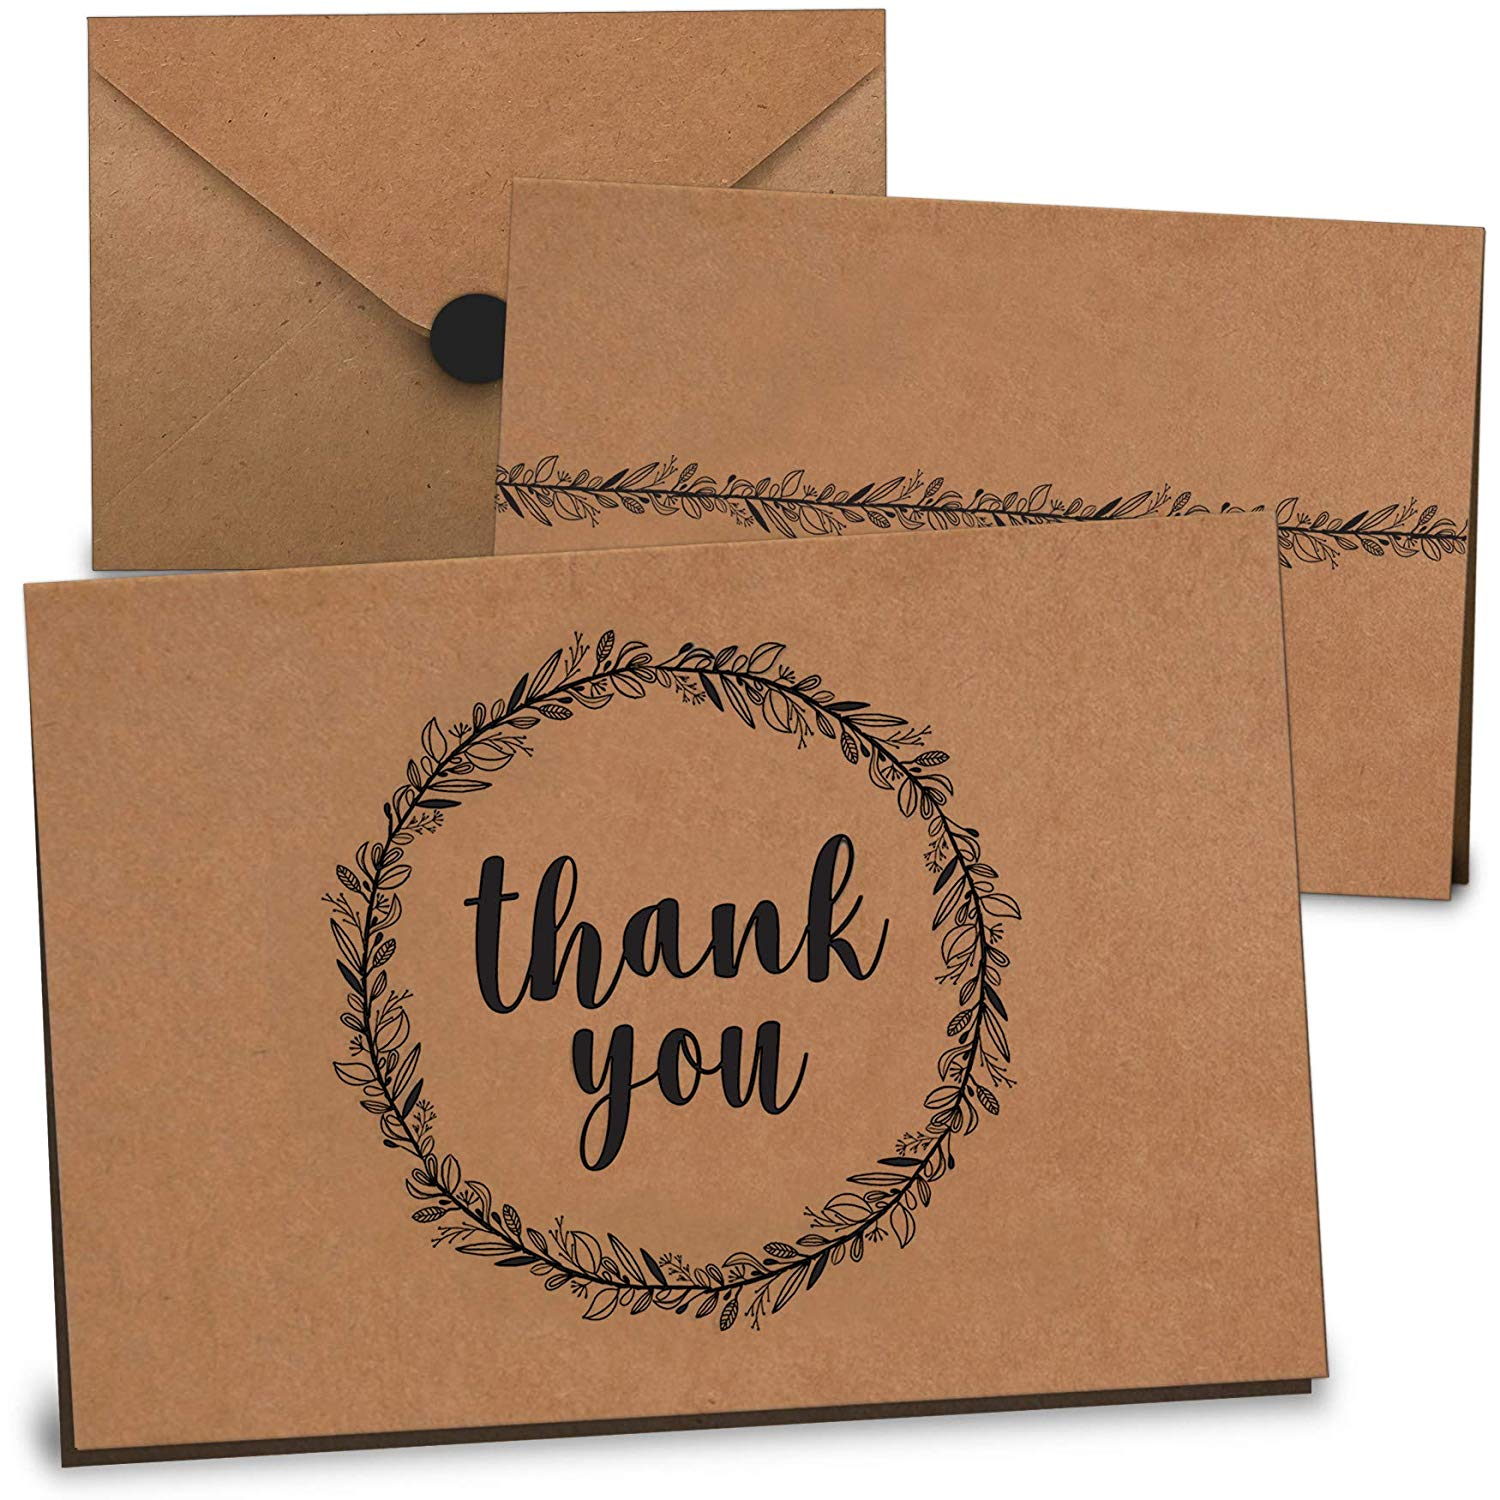 These rustic thank you cards are only $20 for 100!